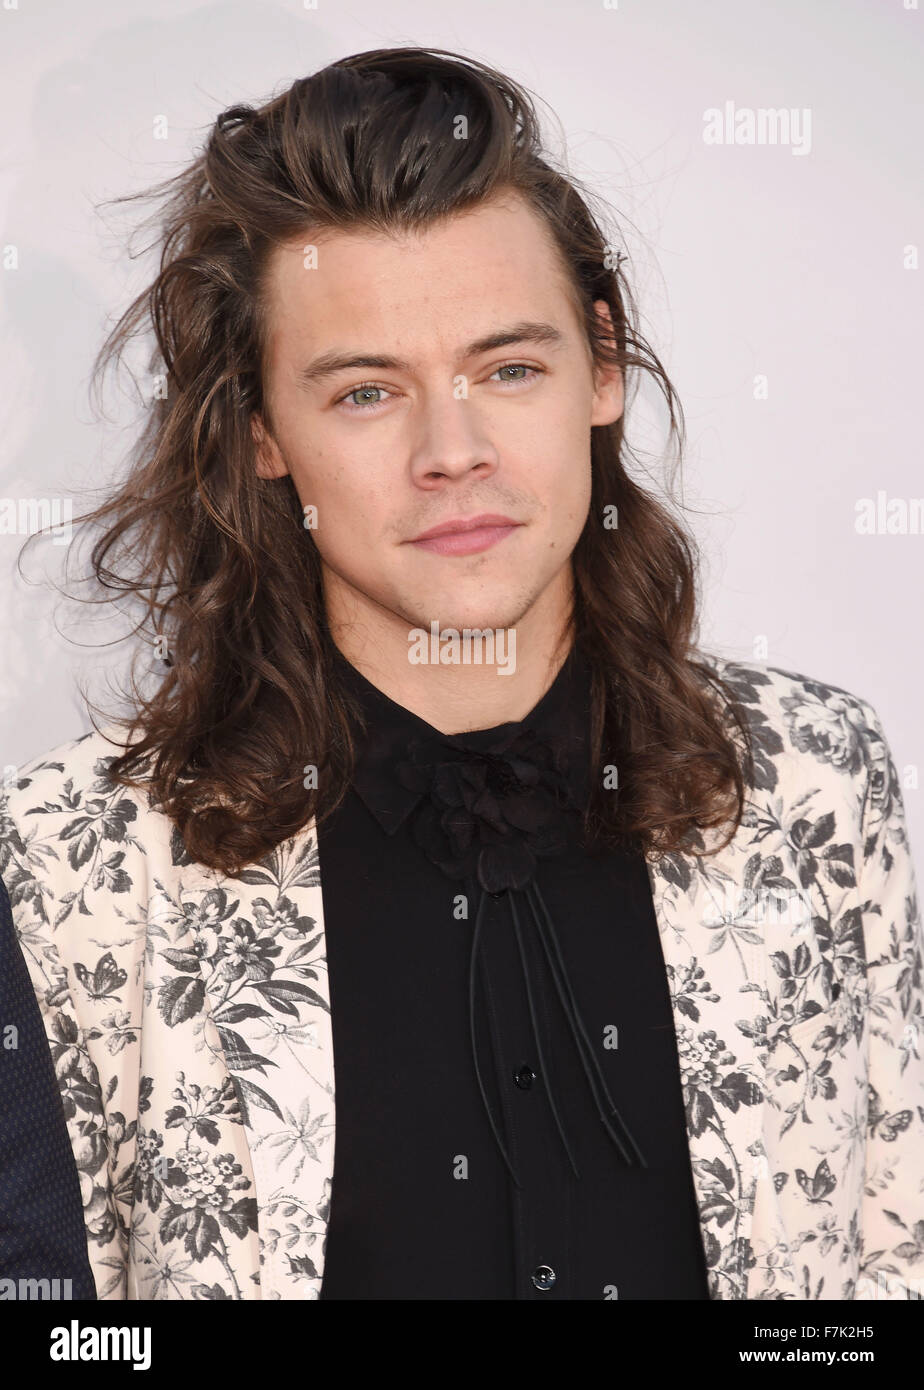 HARRY STYLES UK pop singer with One Direction in November 2015. Photo Jeffrey Mayer - Stock Image